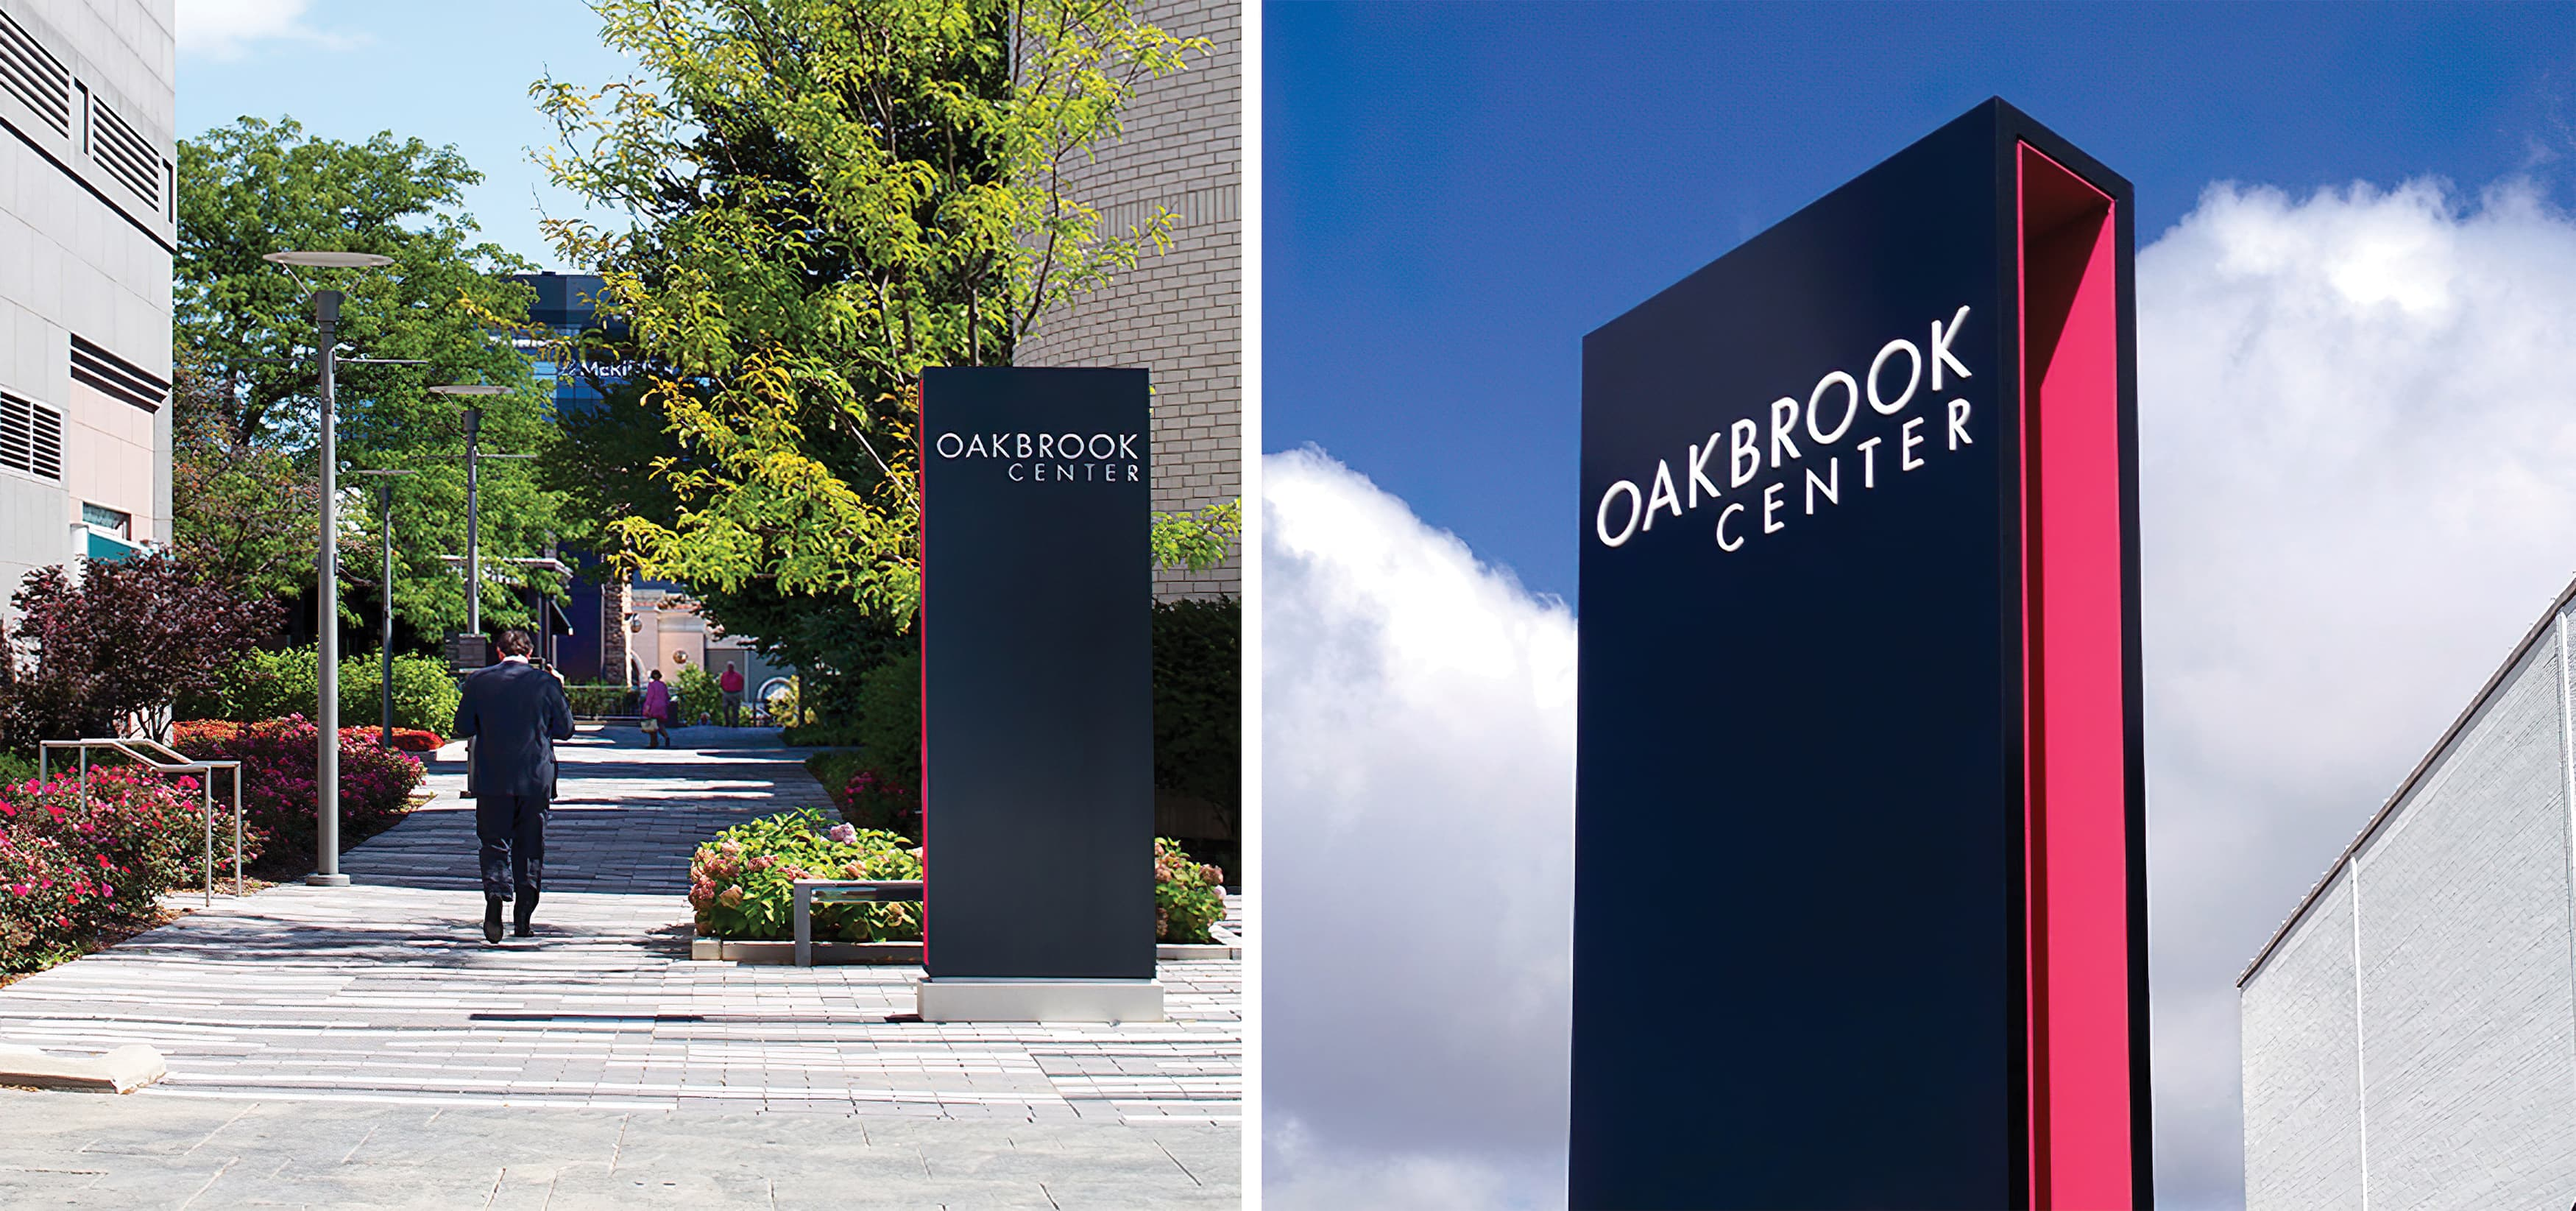 Oakbrook Center, a mixed-use shopping center in Oakbrook, Illinois. Project Identity Signage.